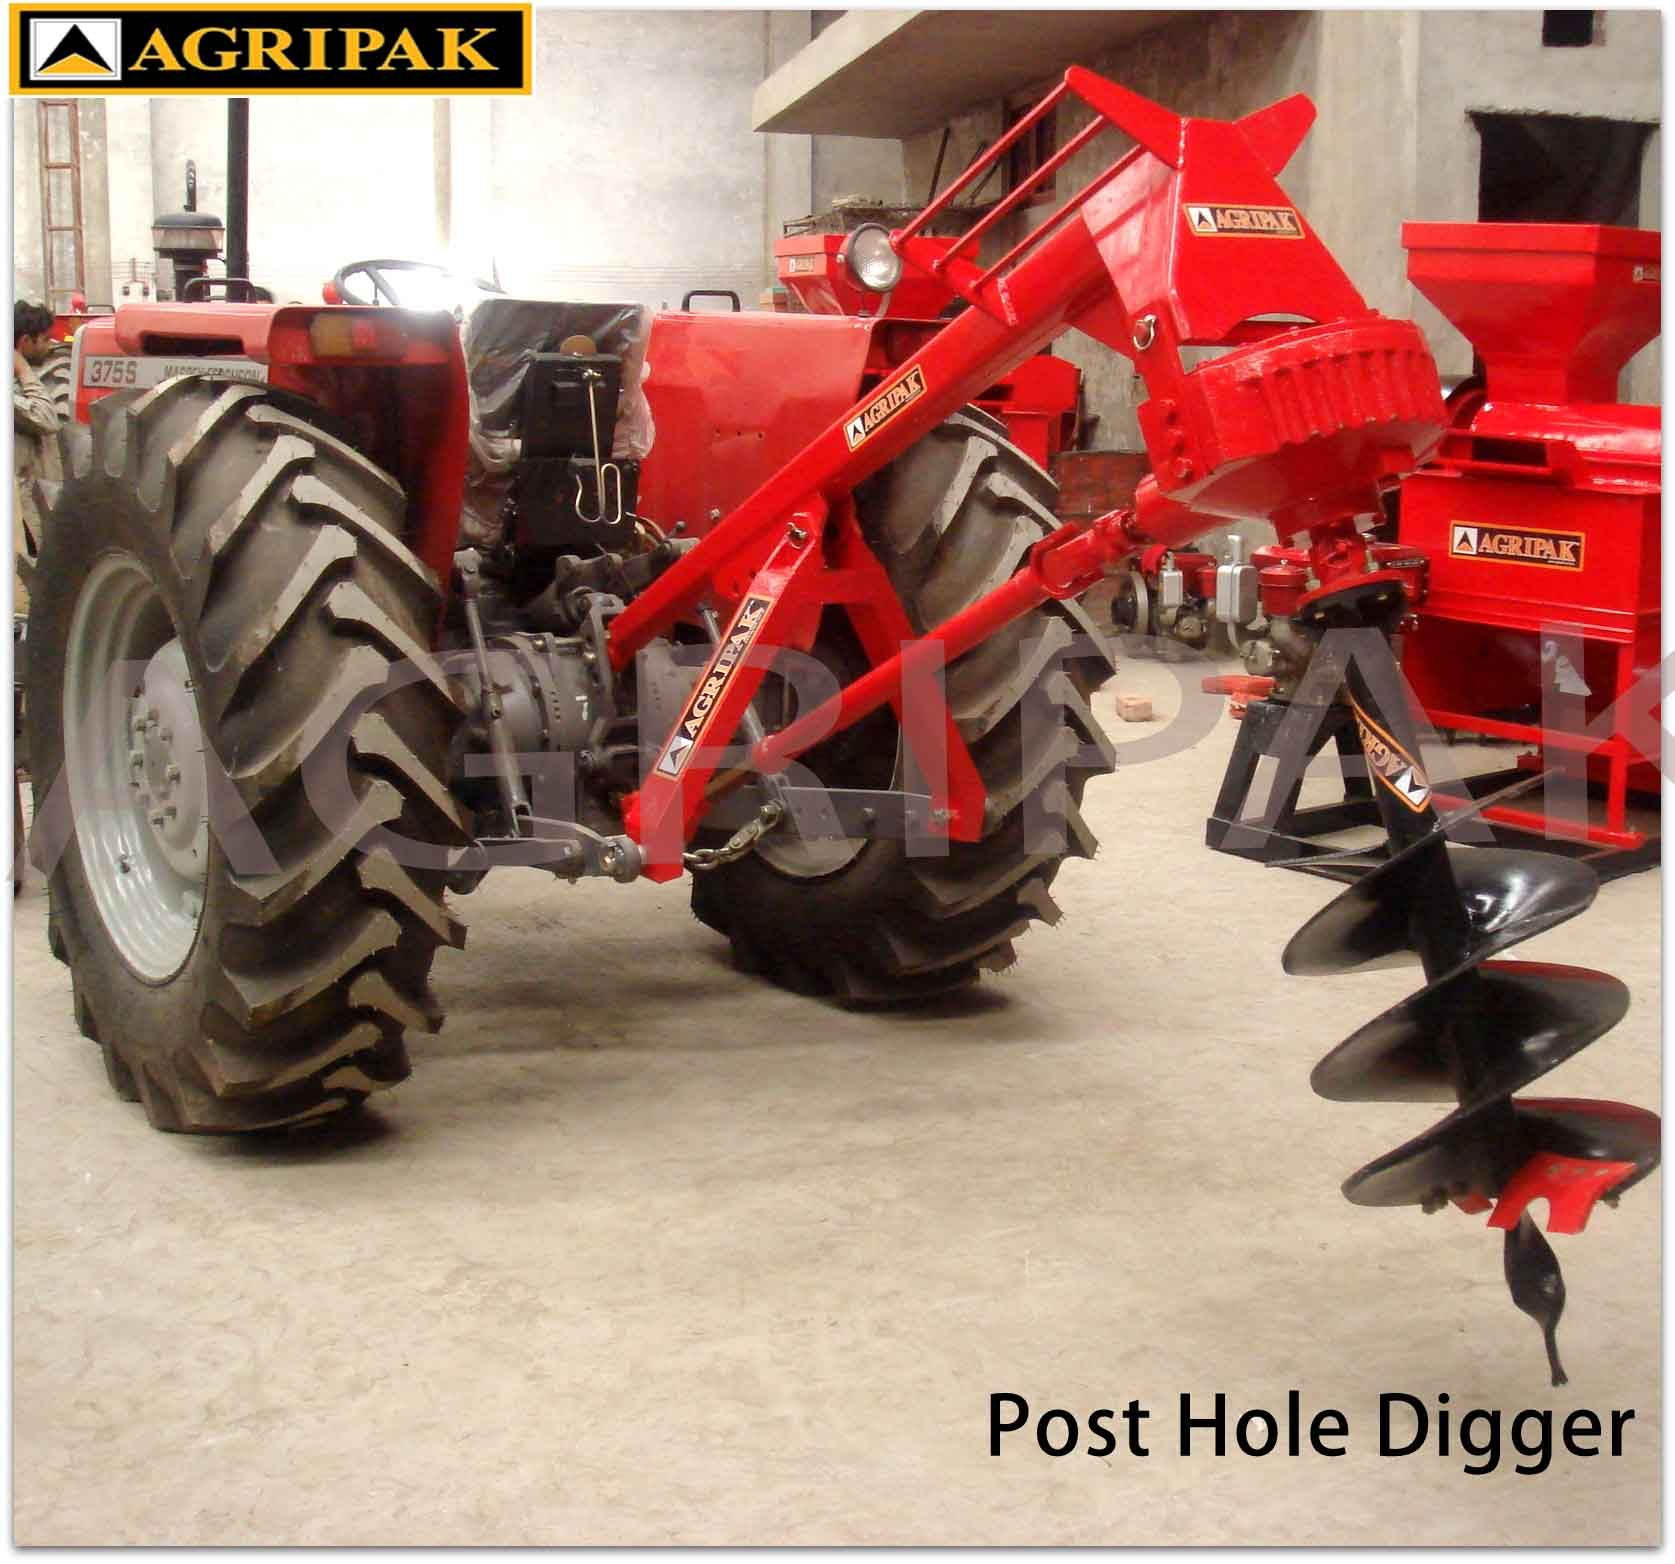 AGRIPAK Post Hole Digger Digger Diameter : 8,10,18 Inches Working Depth: 36  Inches (90cm) Operating Speed: 90cm per 1/2 minute PTO: 540rmp Weight: 170  Kg ...